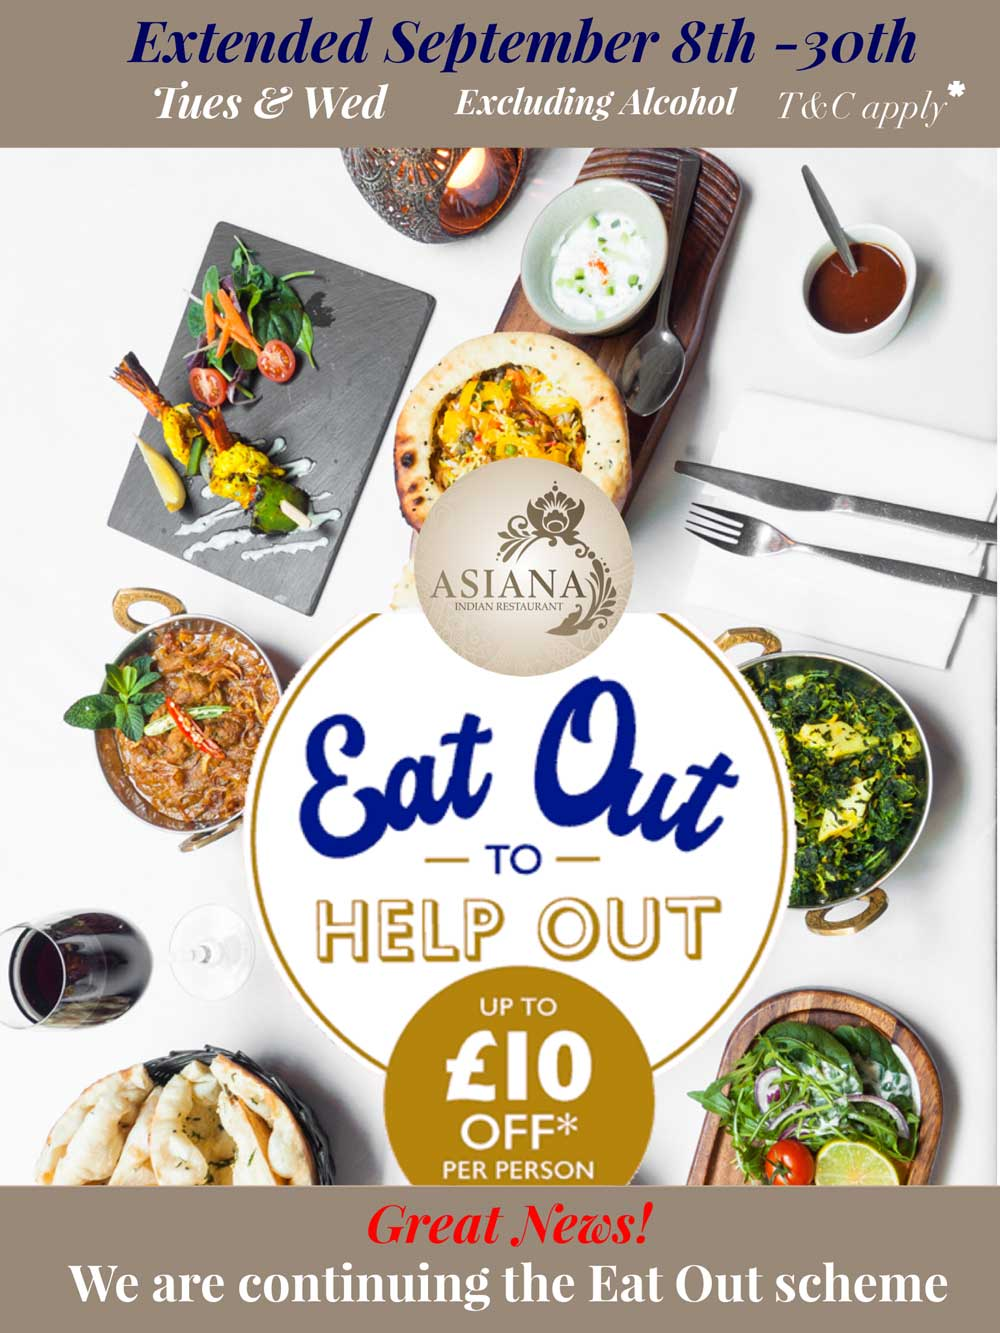 Eat Out to Help Out offer extended